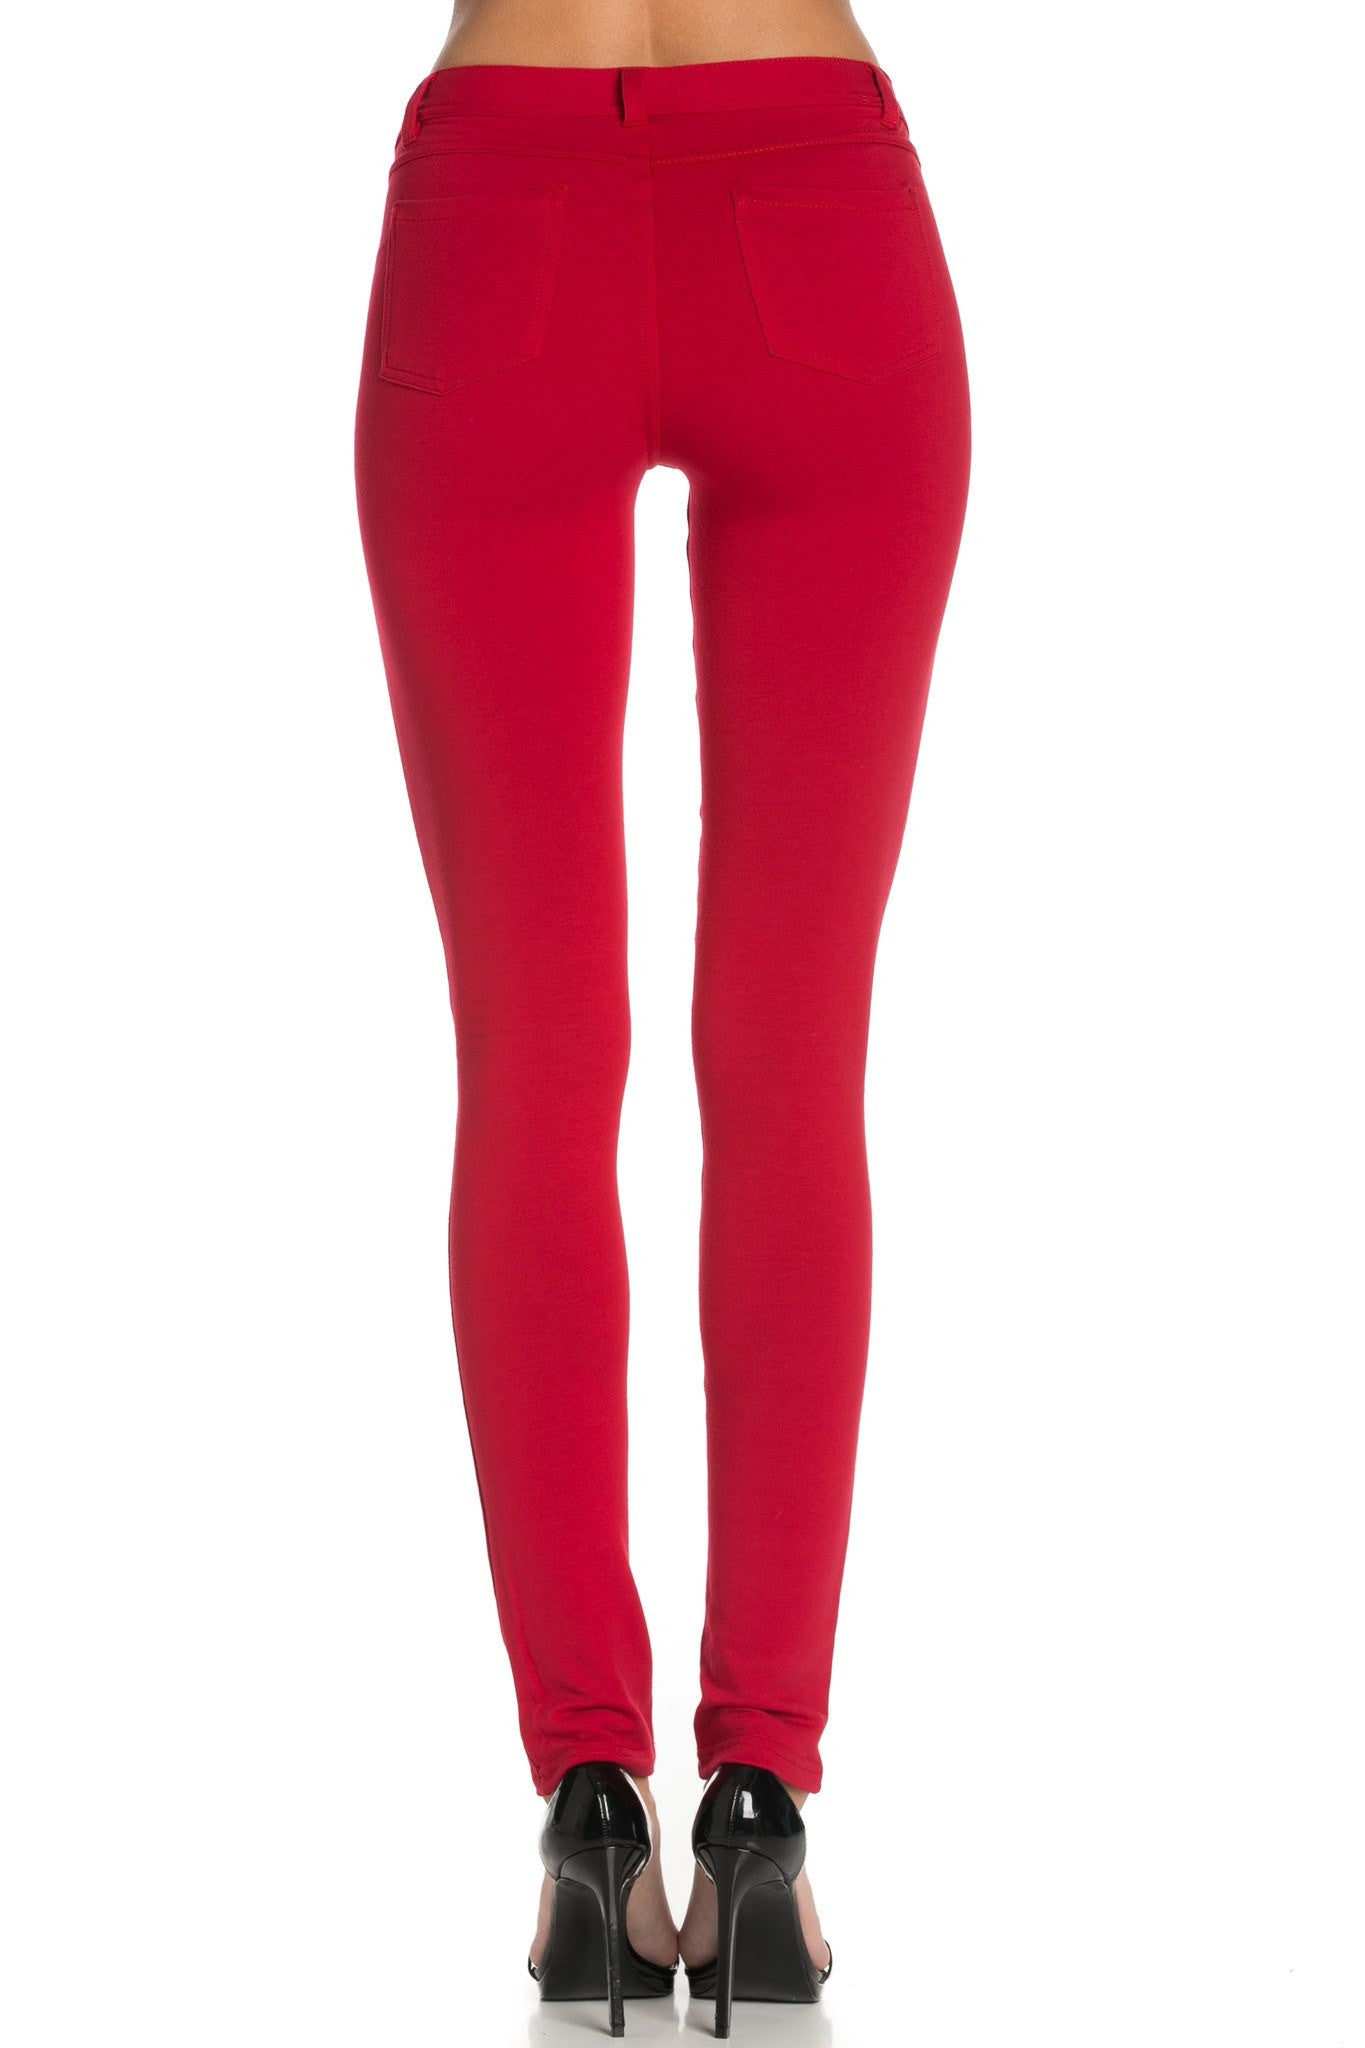 Stretch Skinny Knit Jegging Pants (Red) - Poplooks